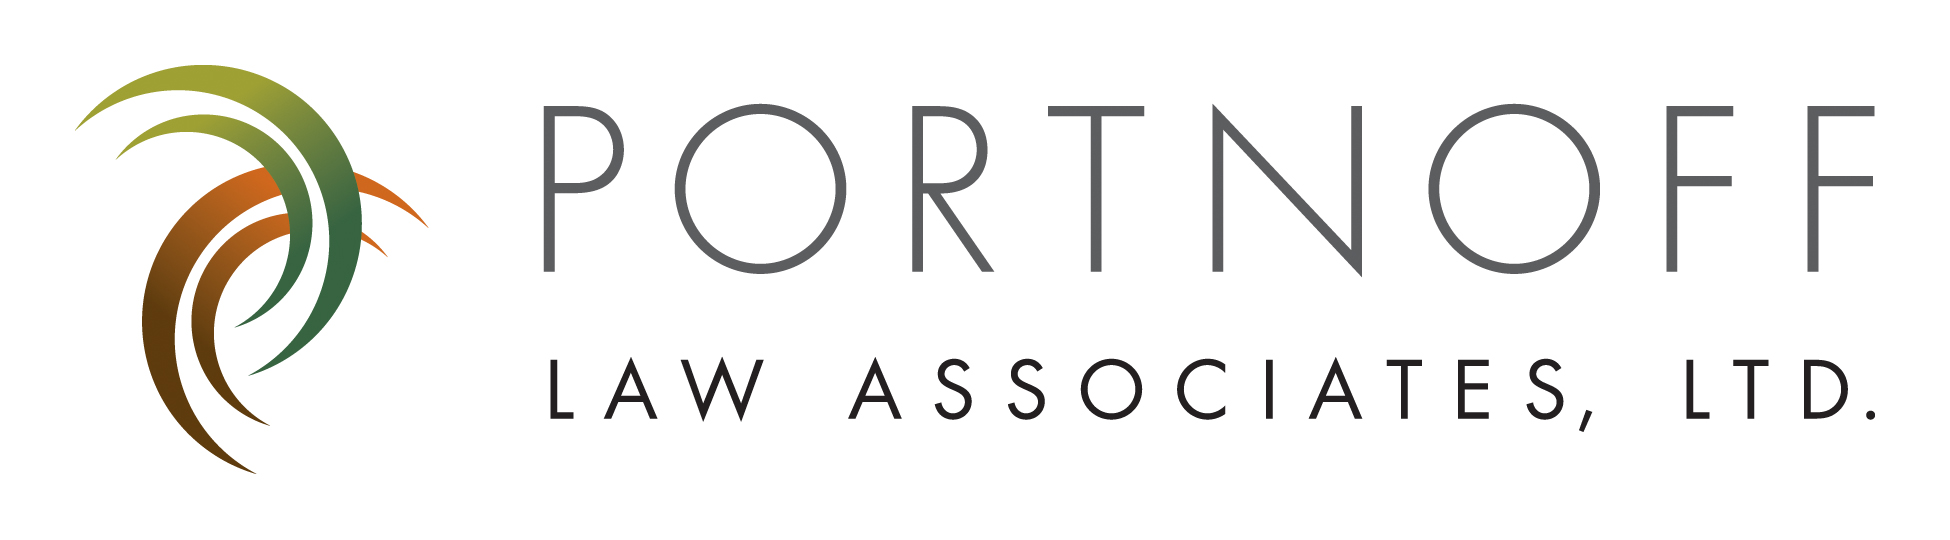 Portnoff Law Associates, Ltd. Logo